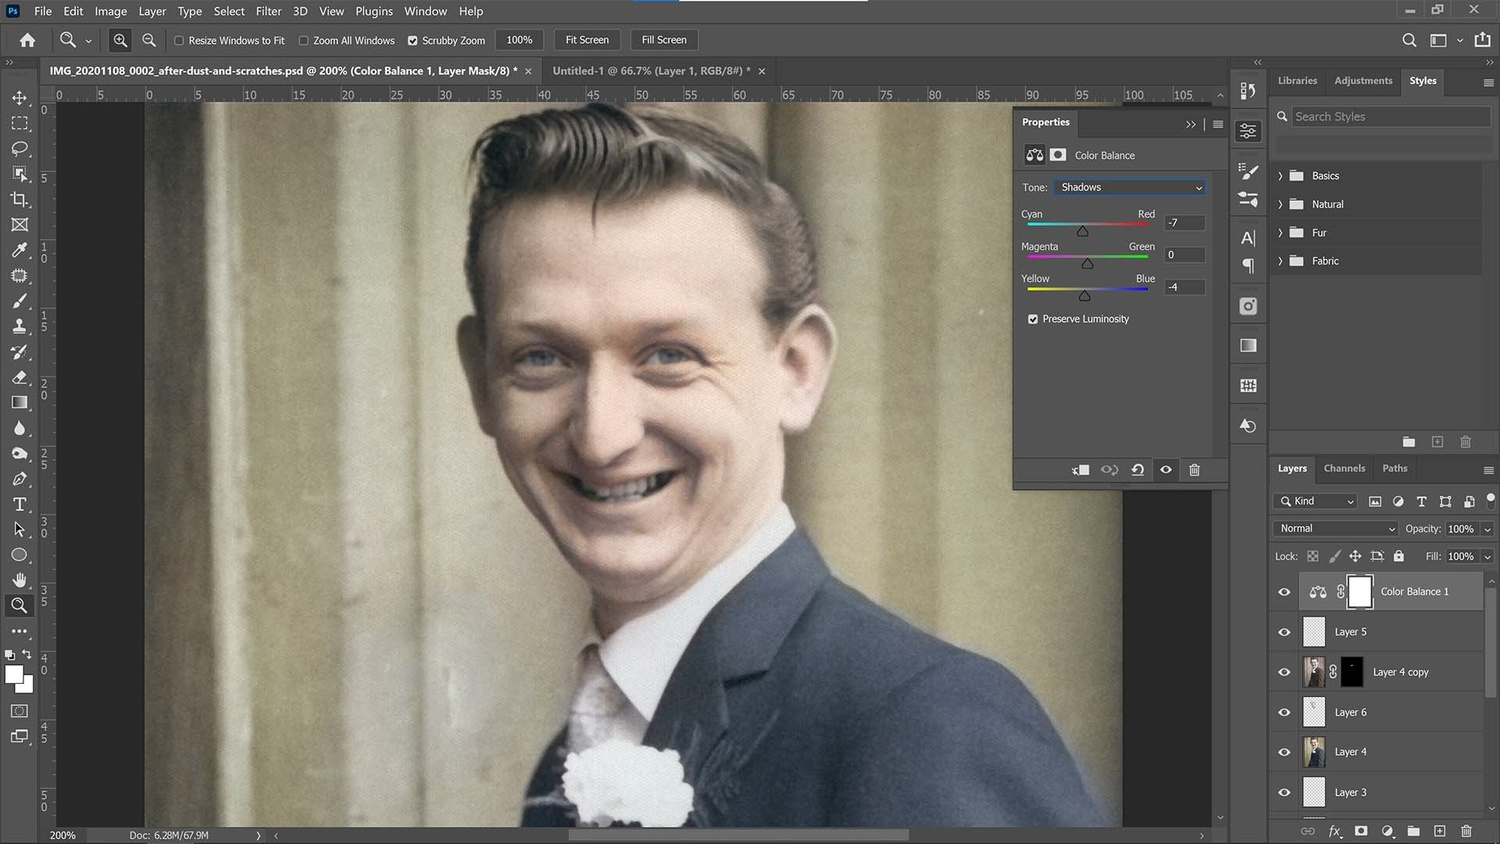 Adjust color balance in the photo